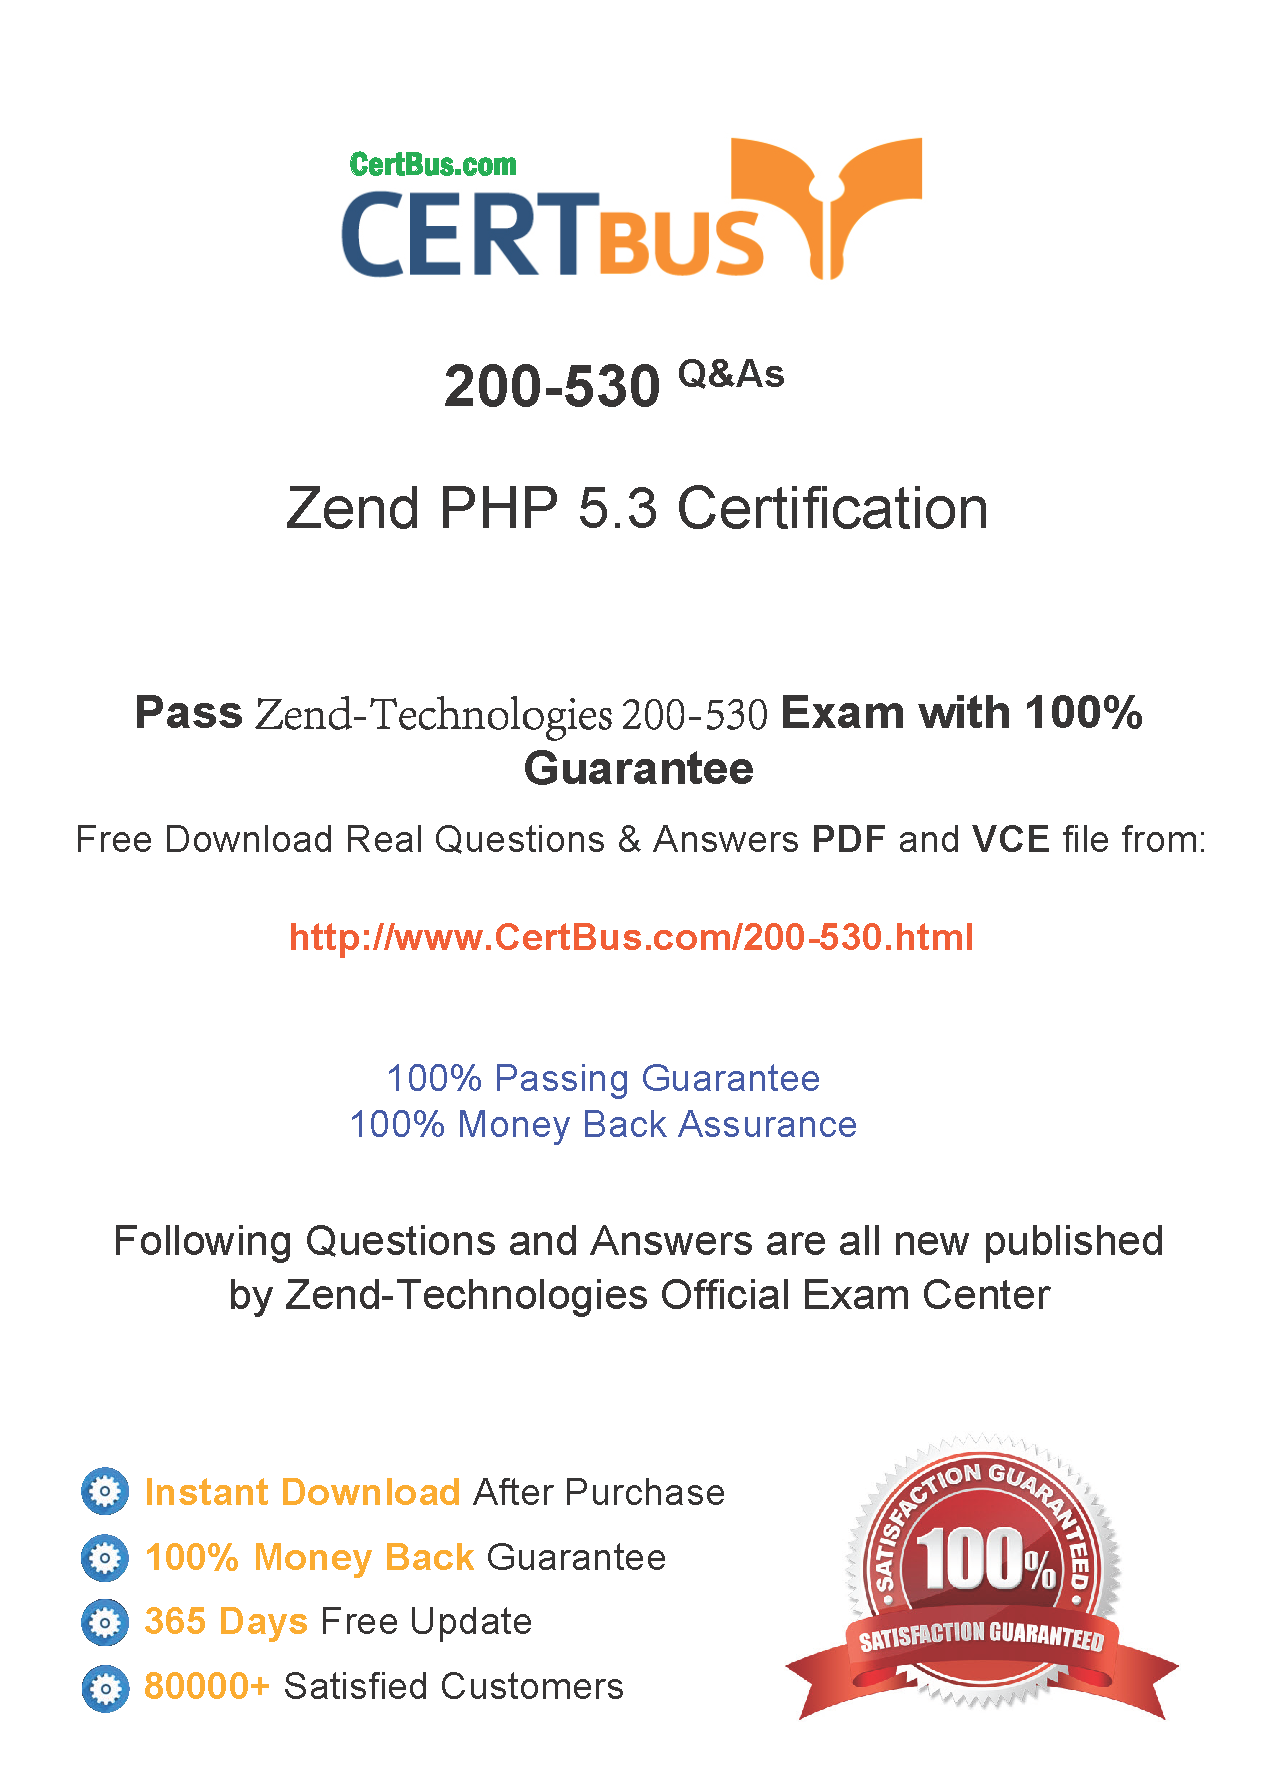 Candidate need to purchase the latest Zend Technologies 200-530 Dumps with latest Zend Technologies 200-530 Exam Questions. Here is a suggestion for you: Here you can find the latest Zend Technologies 200-530 New Questions in their Zend Technologies 200-530 PDF, Zend Technologies 200-530 VCE and Zend Technologies 200-530 braindumps. Their Zend Technologies 200-530 exam dumps are with the latest Zend Technologies 200-530 exam question.